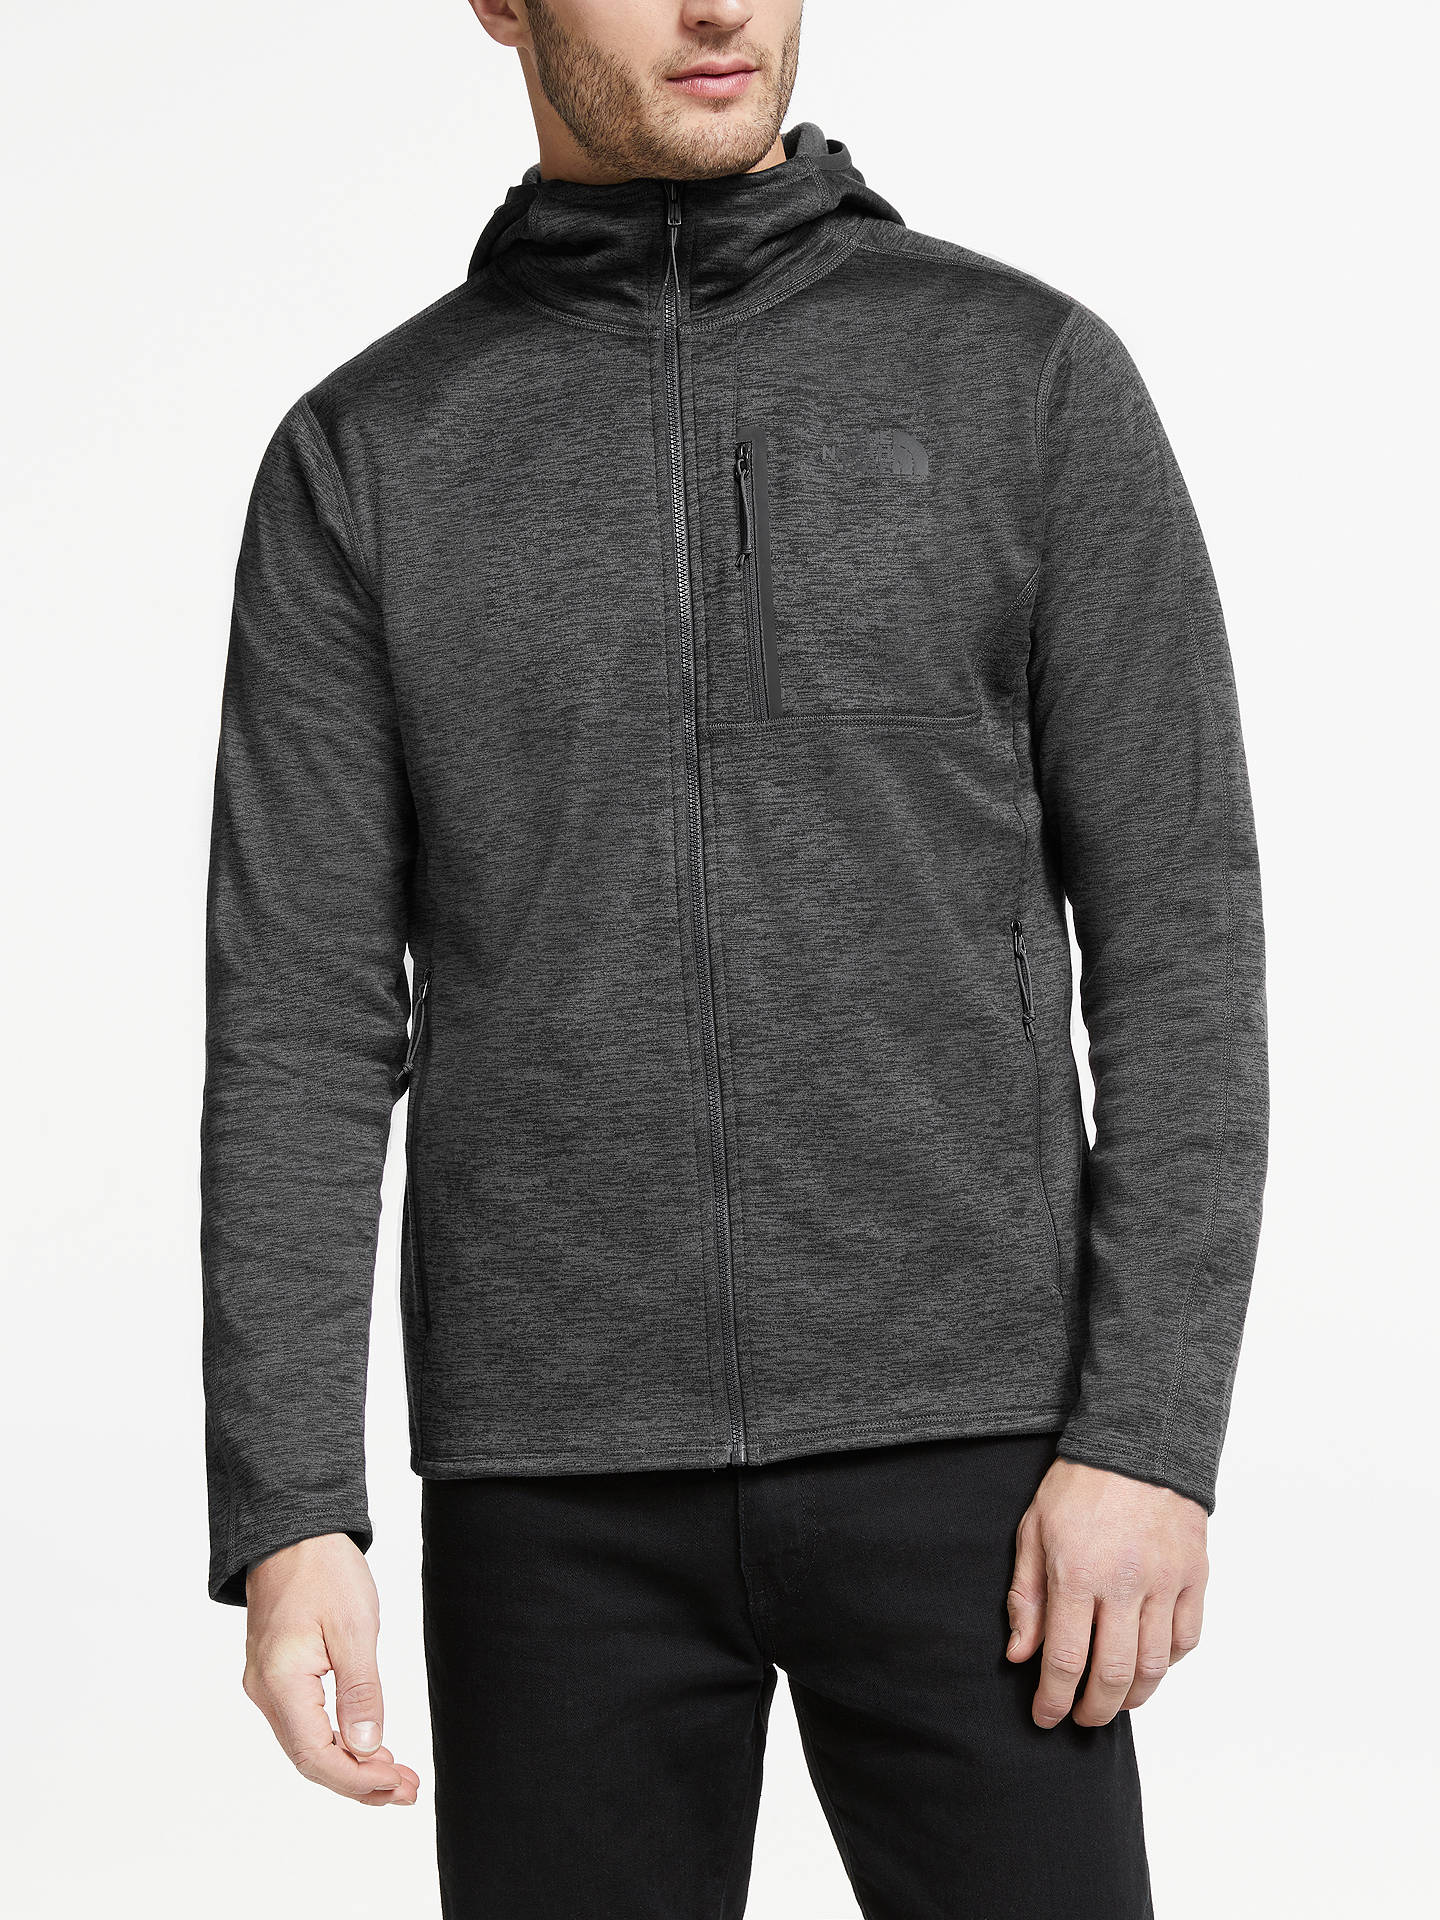 fd52d38b7 The North Face Canyonlands Hoodie, TNF Dark Grey Heather at John ...